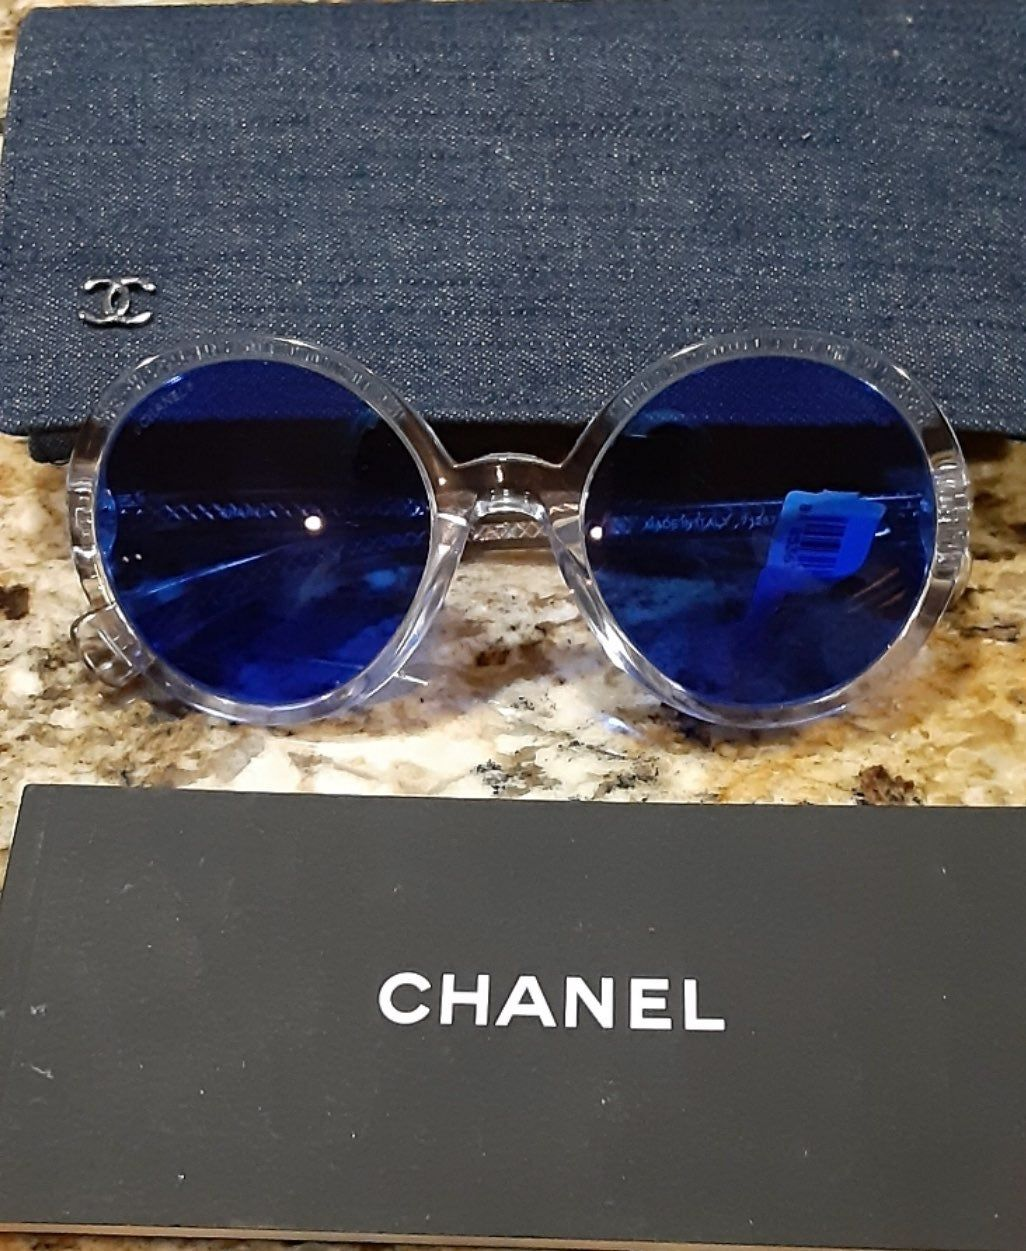 NEW, AUTHENTIC CHANEL Sunglasses. Transparent Frame. Blue